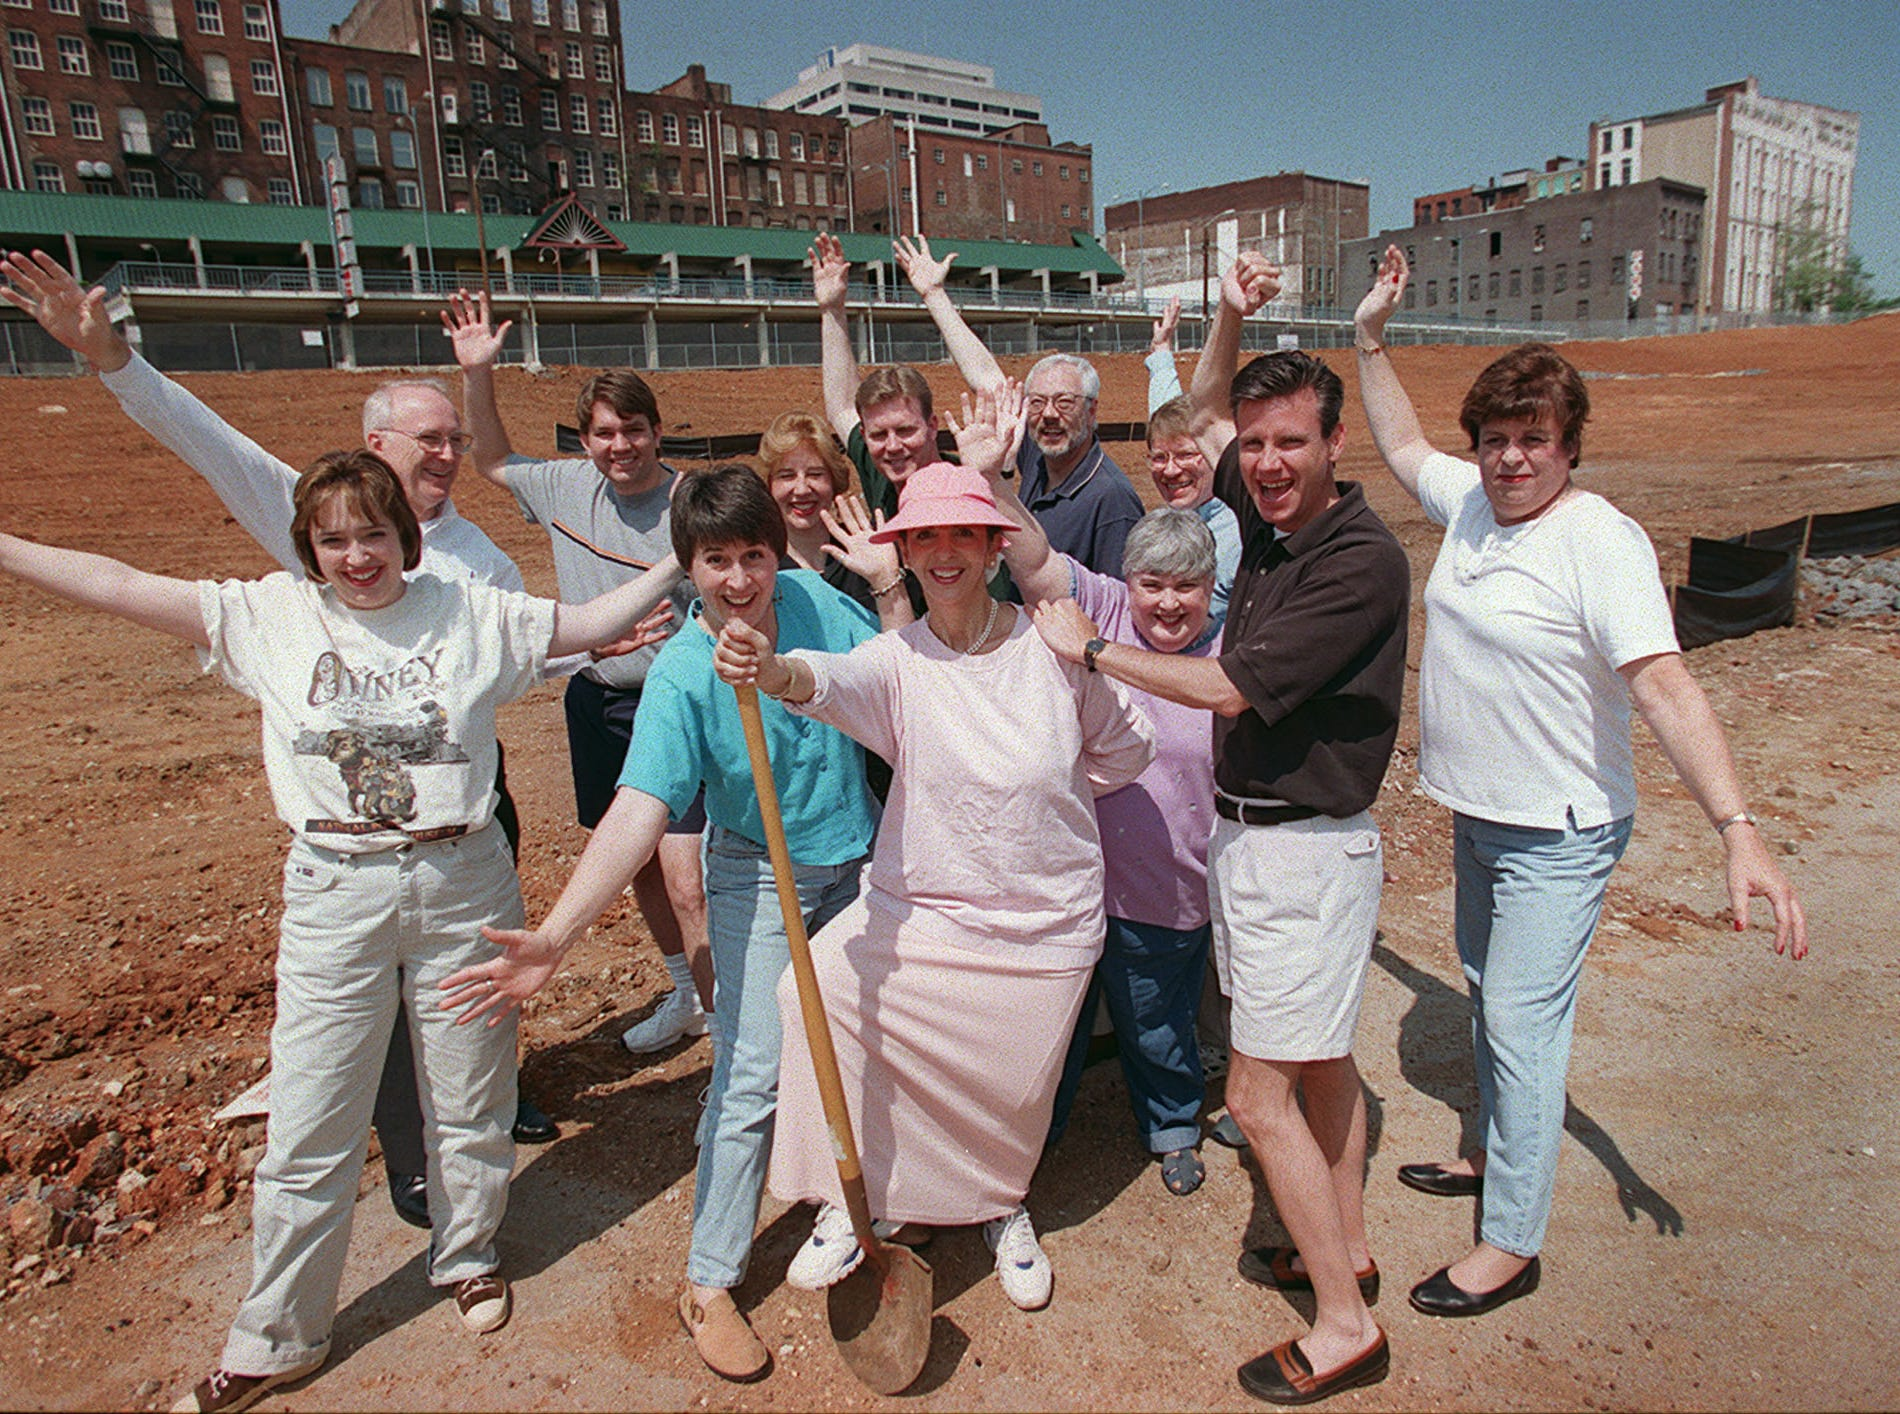 In a May 6, 2000, photograph, Front Page Follies cast members attempt to fill the void left by the ill-fated downtown justice center. Pictured are: ( front row, from left) Kristi Nelson, Carol Zinavage, Anne McKinney, Suzanne Foree Neal, Gary Loe and Barbara Womack; (back row, from left) Ed Miller, Monty Howard, Lisa Hood Skinner, Steve Skinner, Alan Carmichael and David Lauver. The Follies, presented by the East Tennessee Chapter of the Society of Professional Journalists, will be held Saturday, May 20, at the Radisson Hotel.